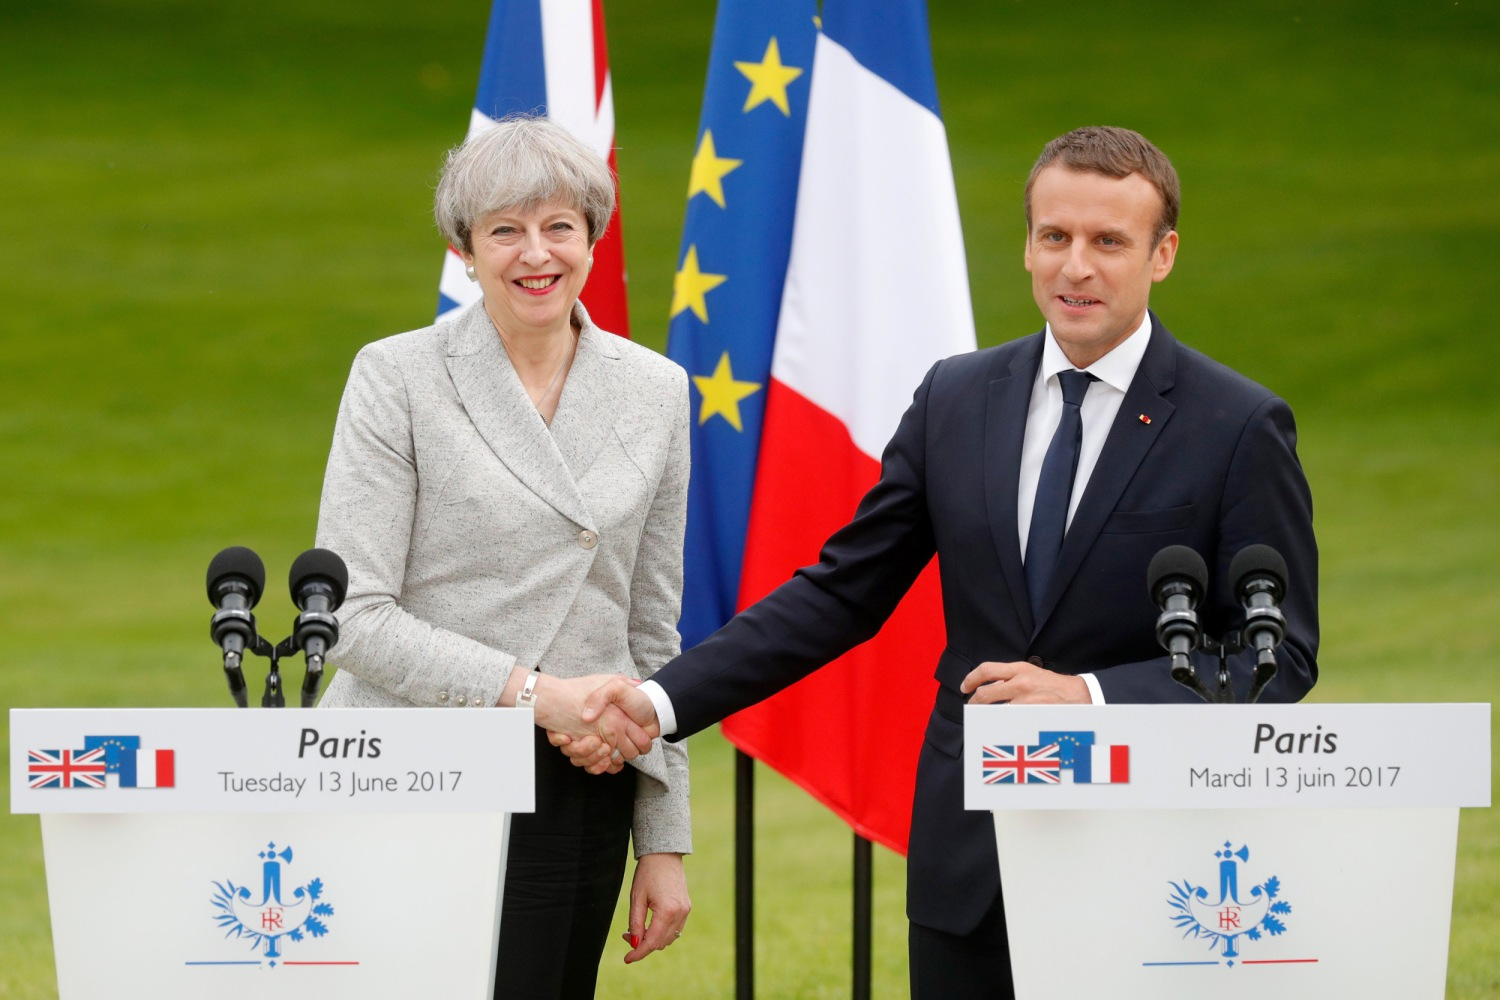 European Union 'door remains open' to United Kingdom, says French president